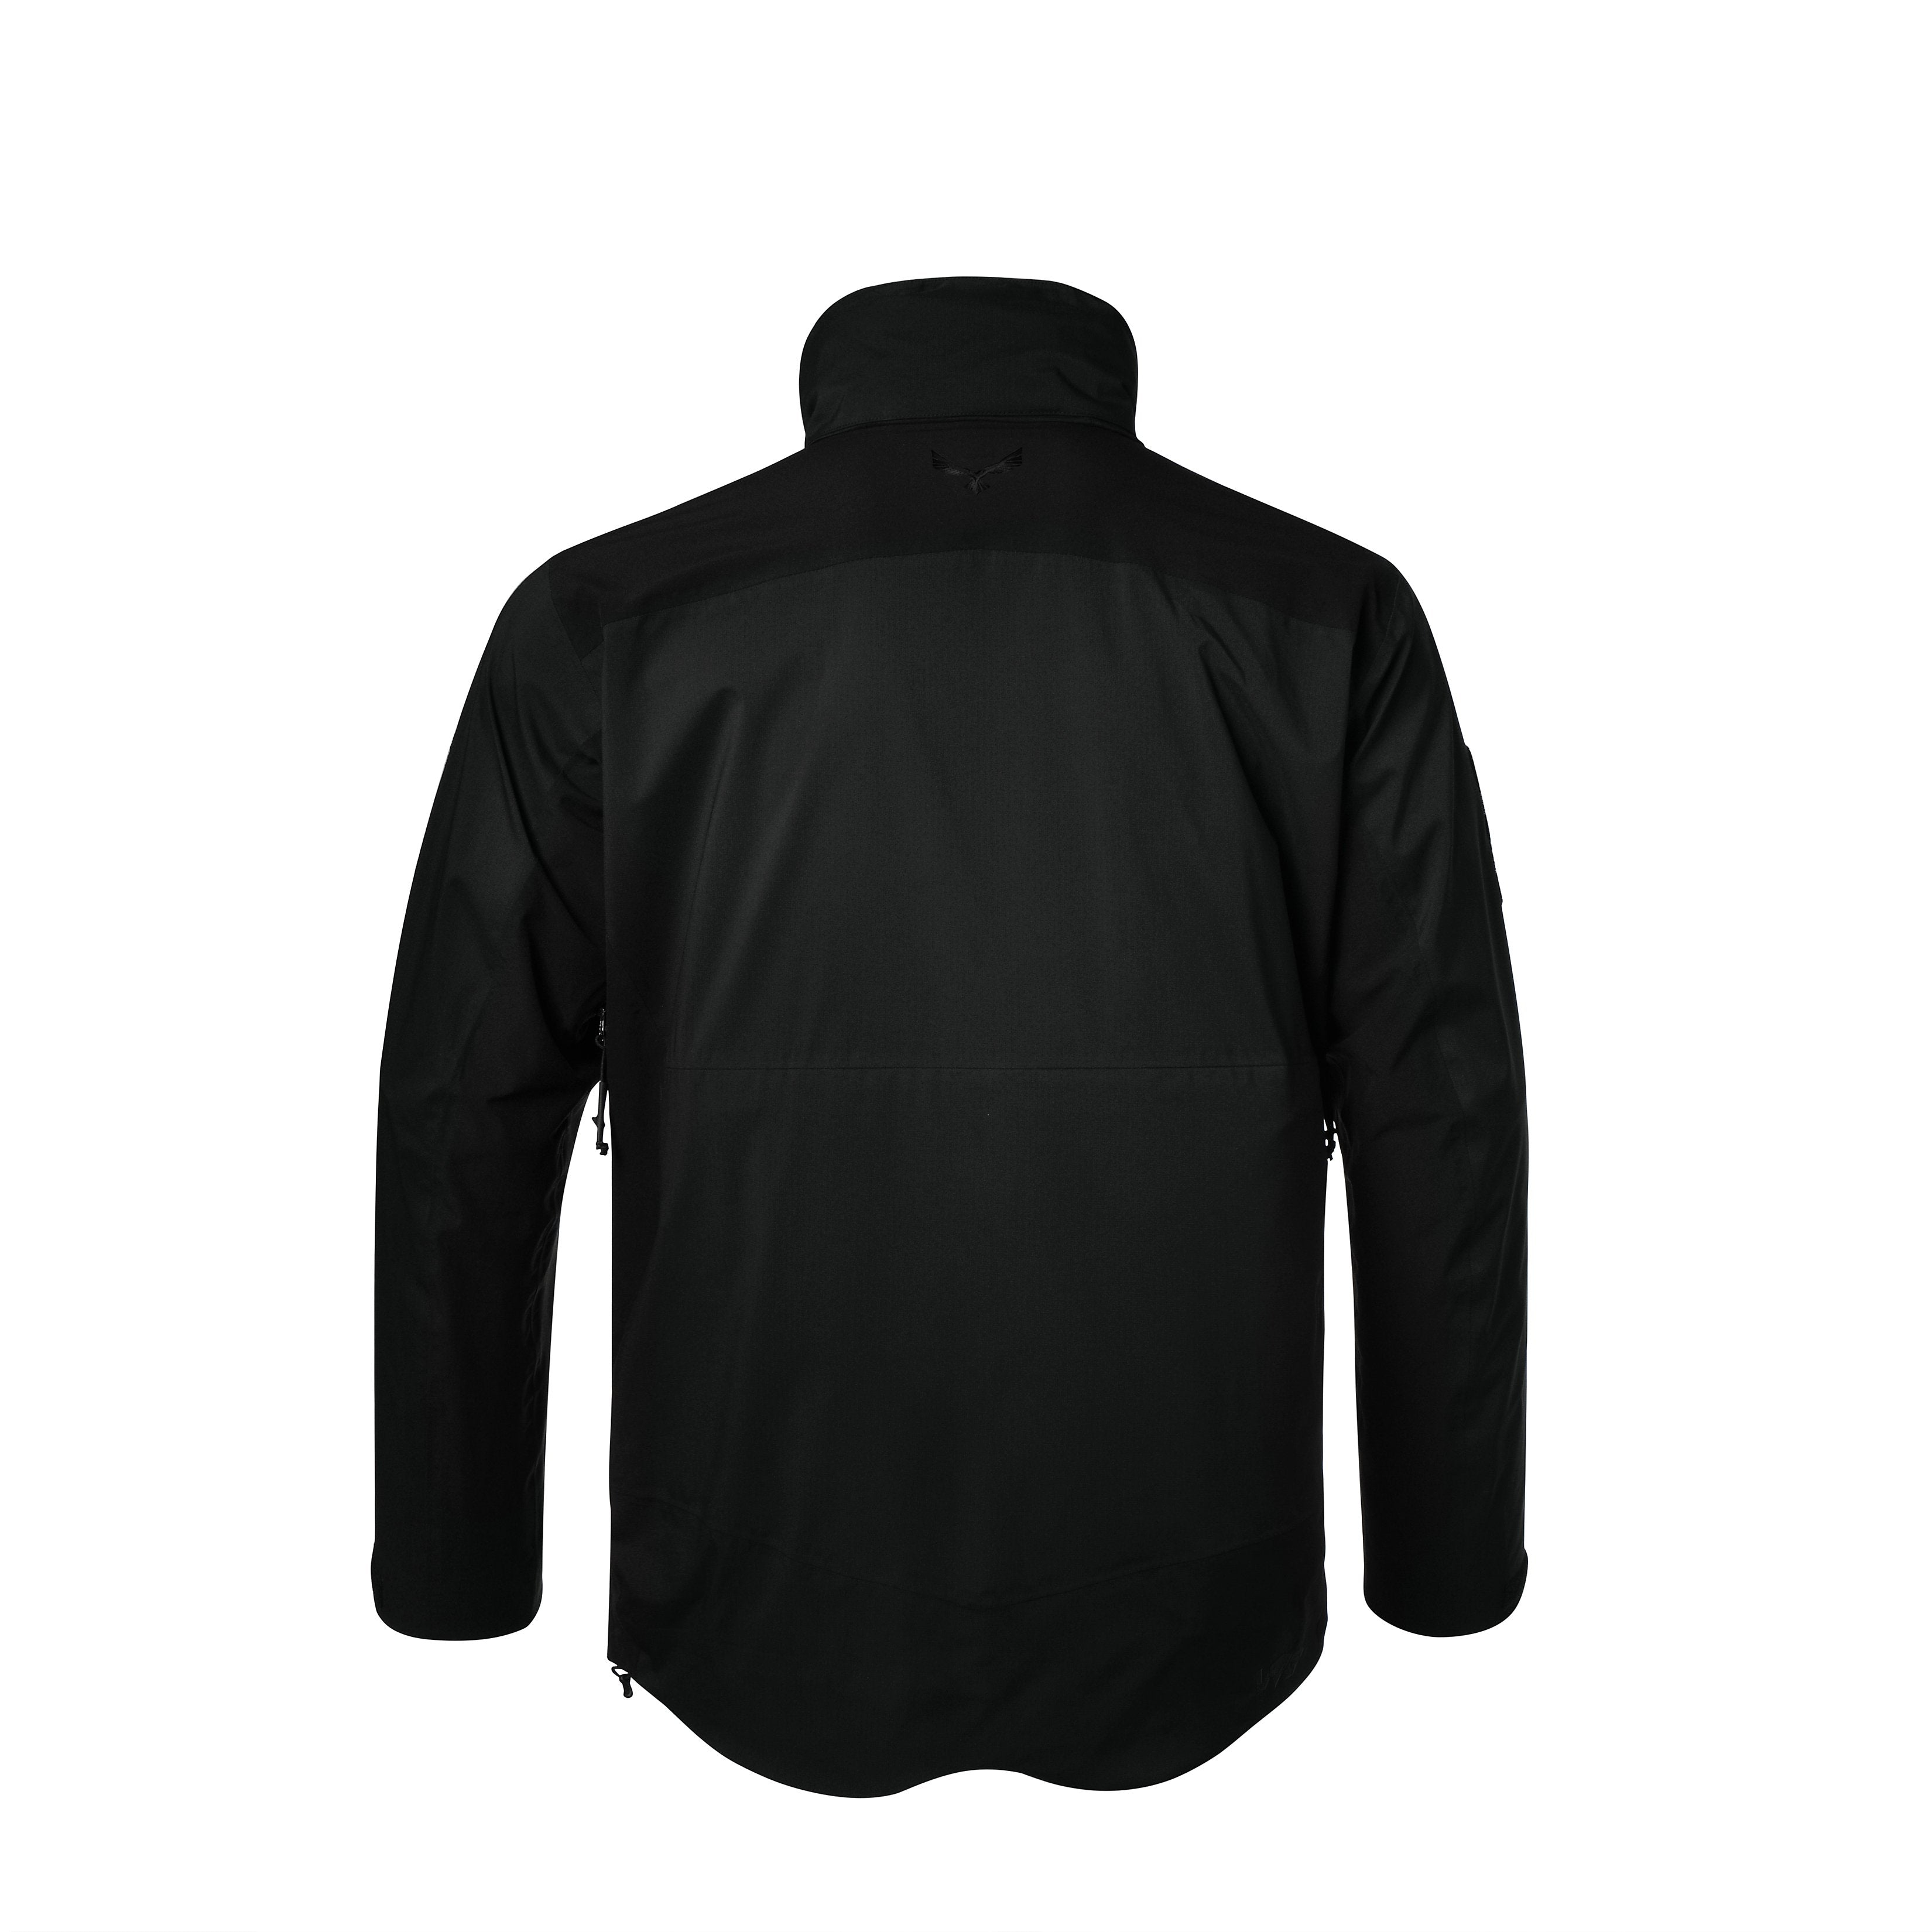 LEAF-Proteus all Jacket -- for Tactical Teams, Outdoors , Athletes